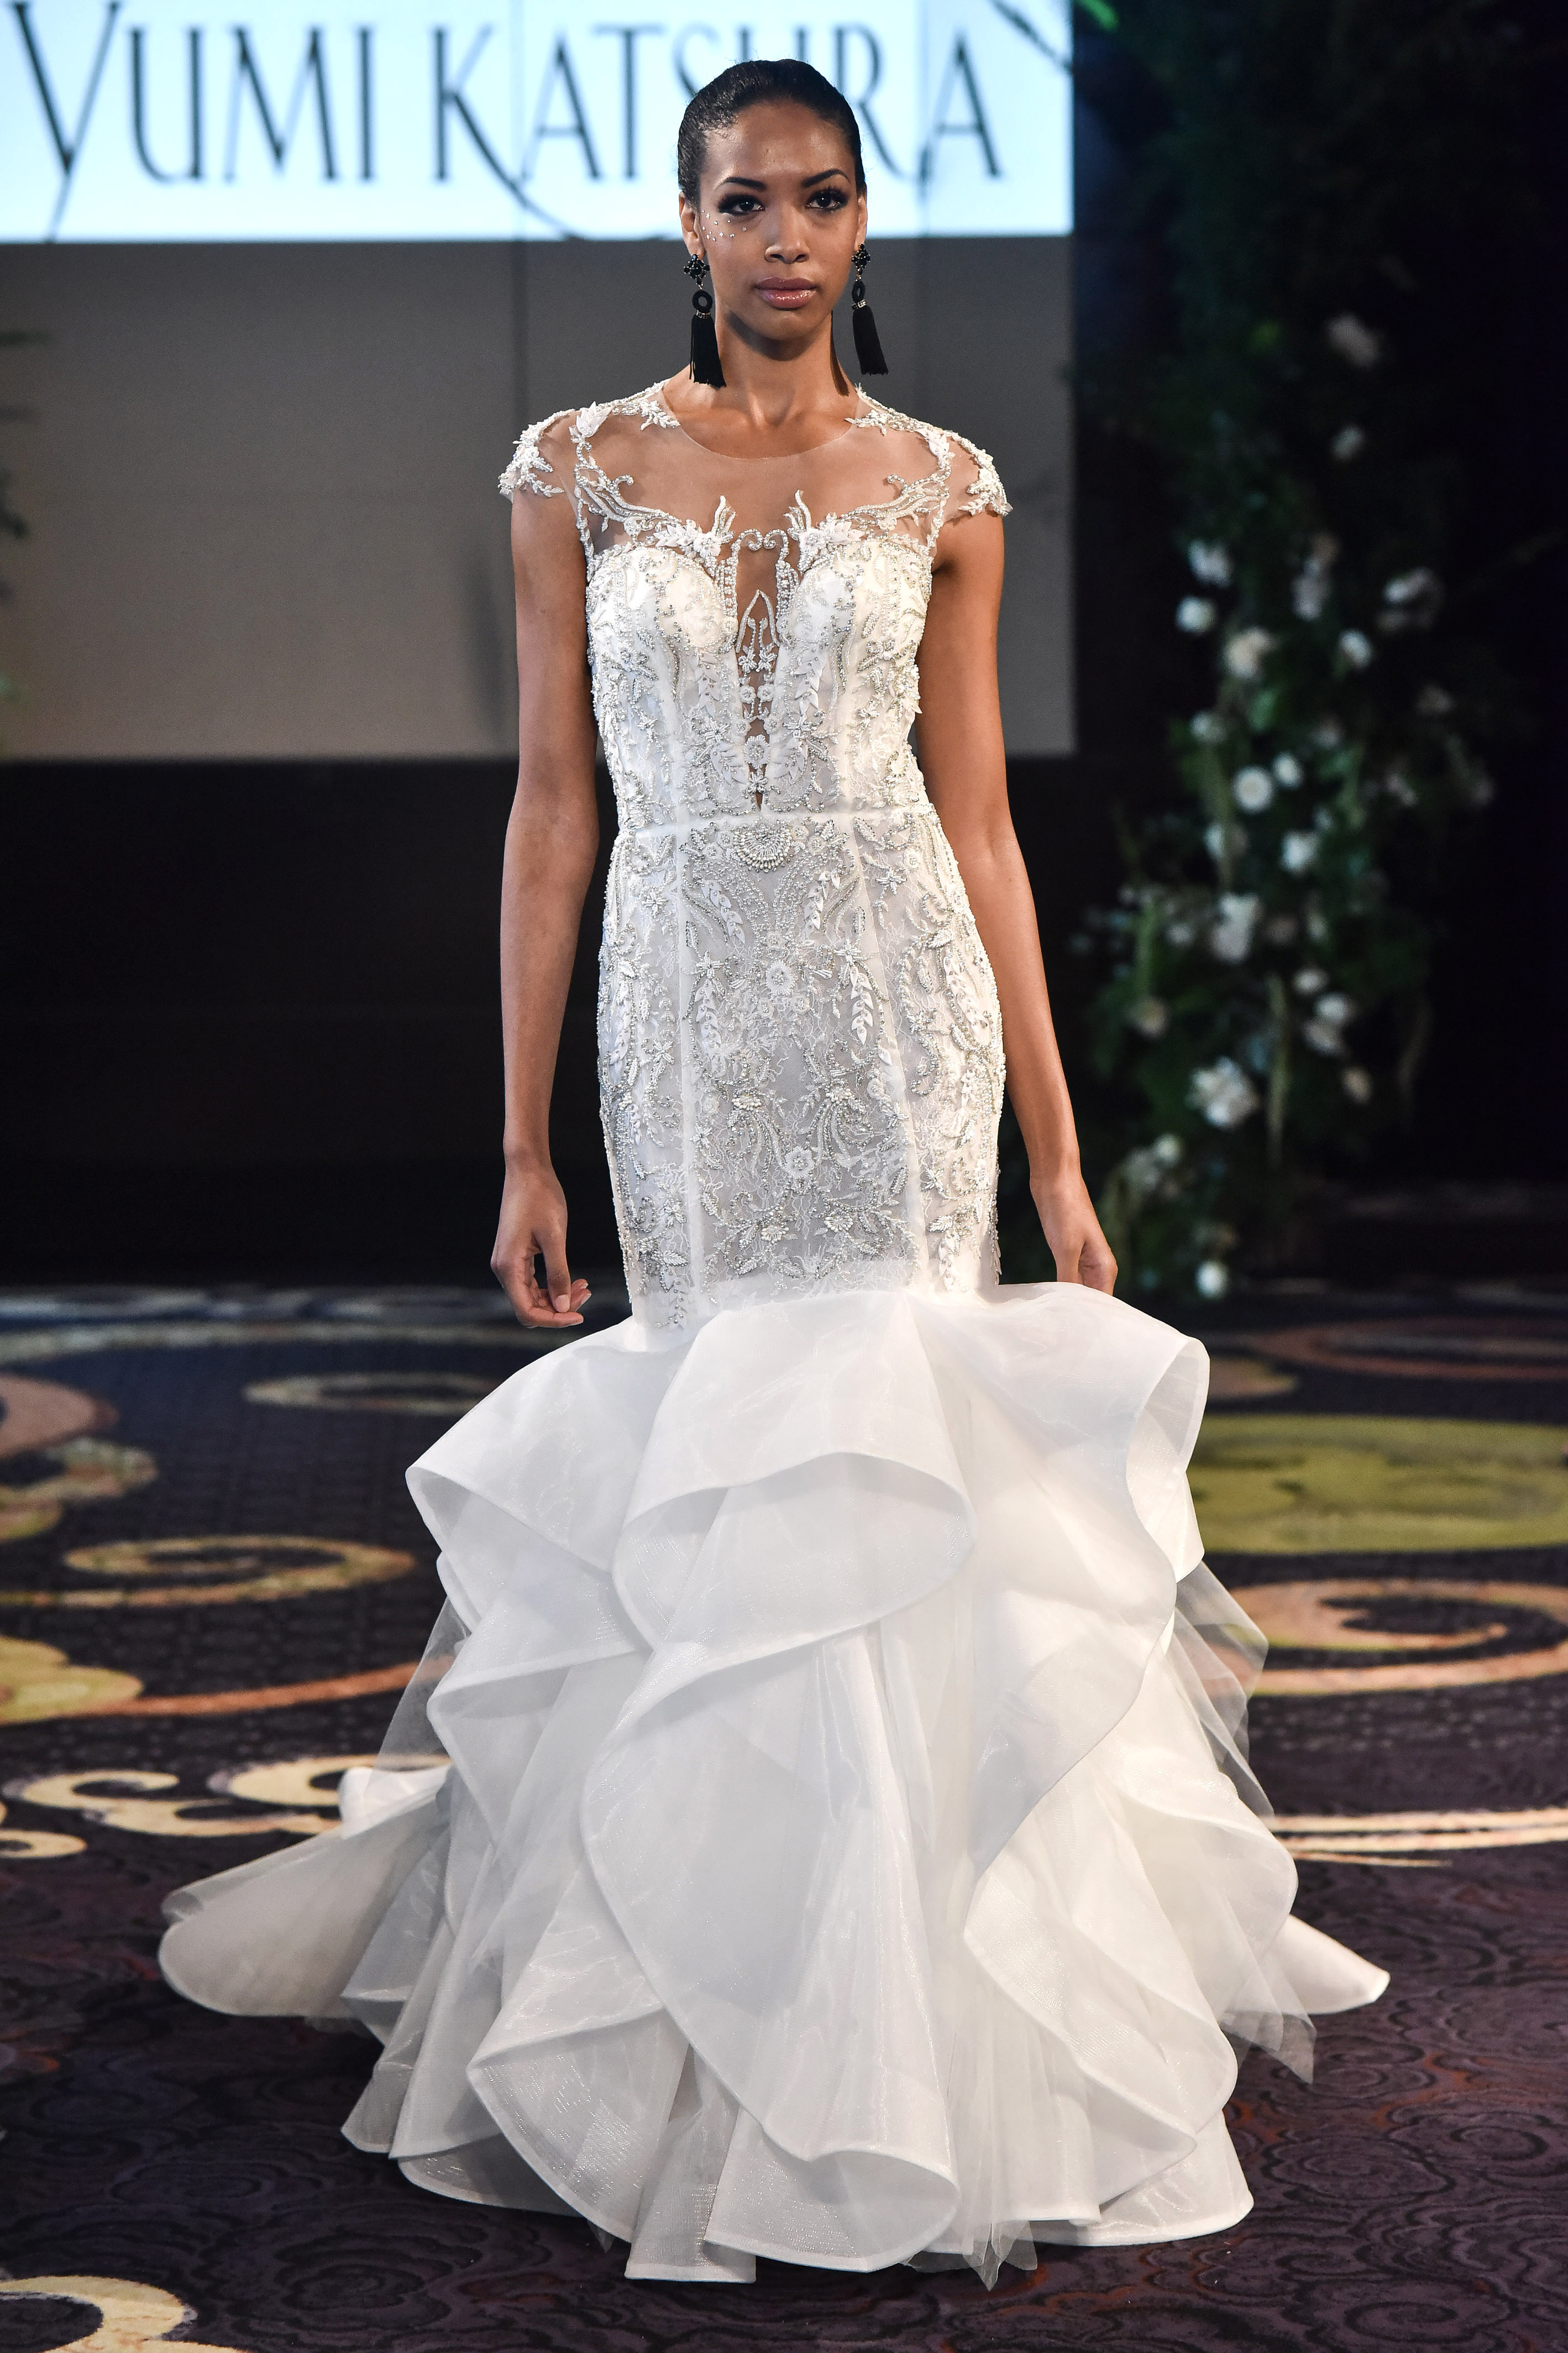 yumi katsura fall 2018 jewel embellished trumpet wedding dress